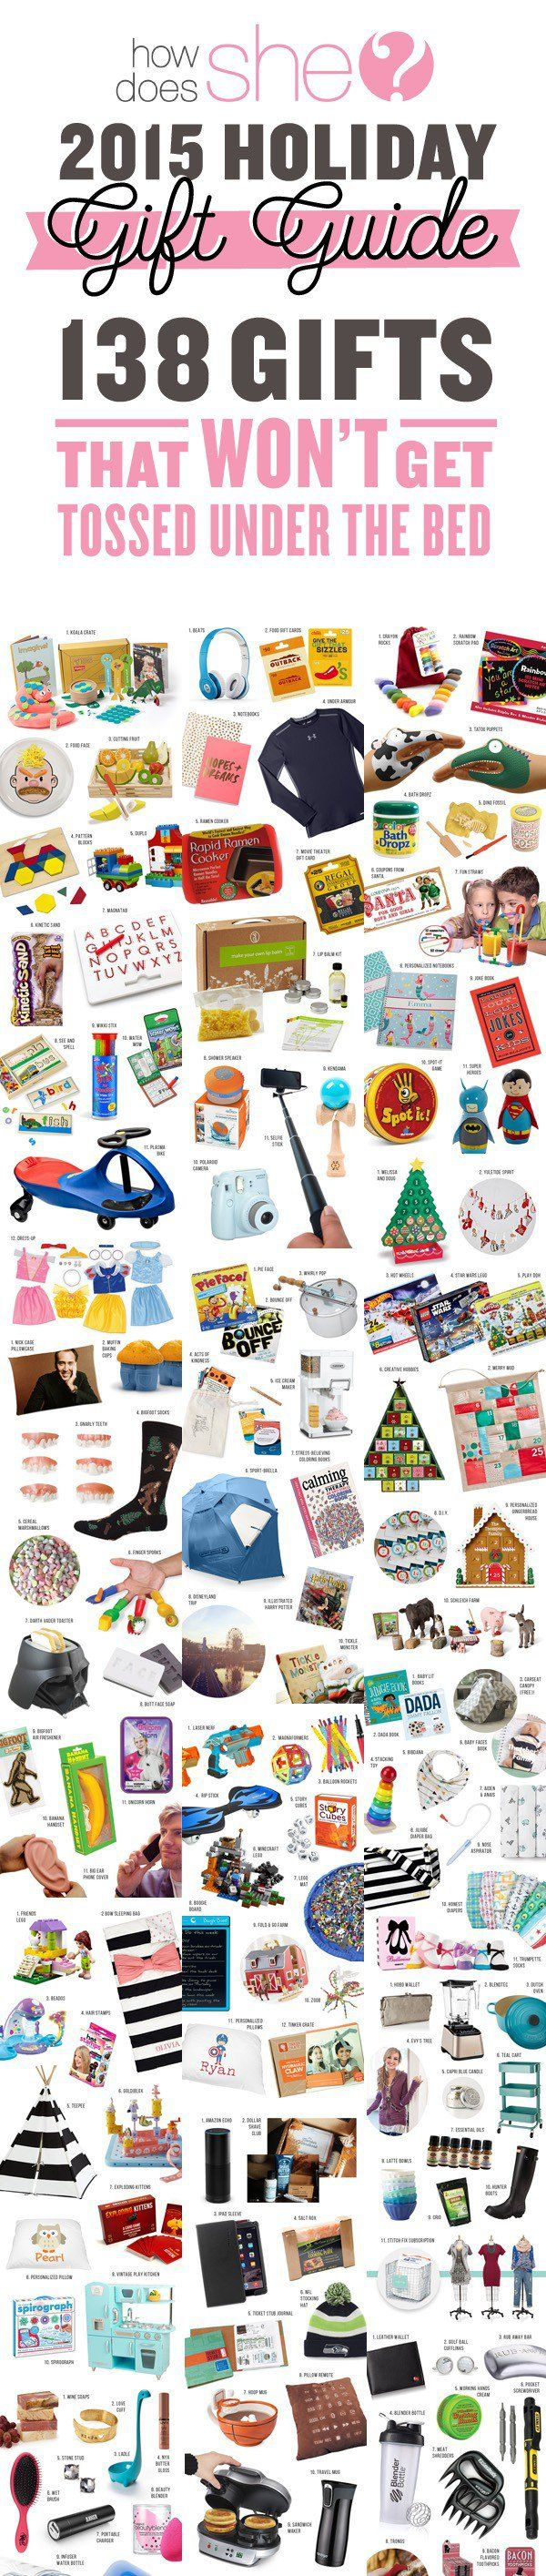 Top Holiday Gifts For Women Part - 25: 138 Gifts That Wonu0027t Get Tossed Under The Bed - The Ultimate Gifts For  Everyone On Your List. Top Gifts For WomenTop ...